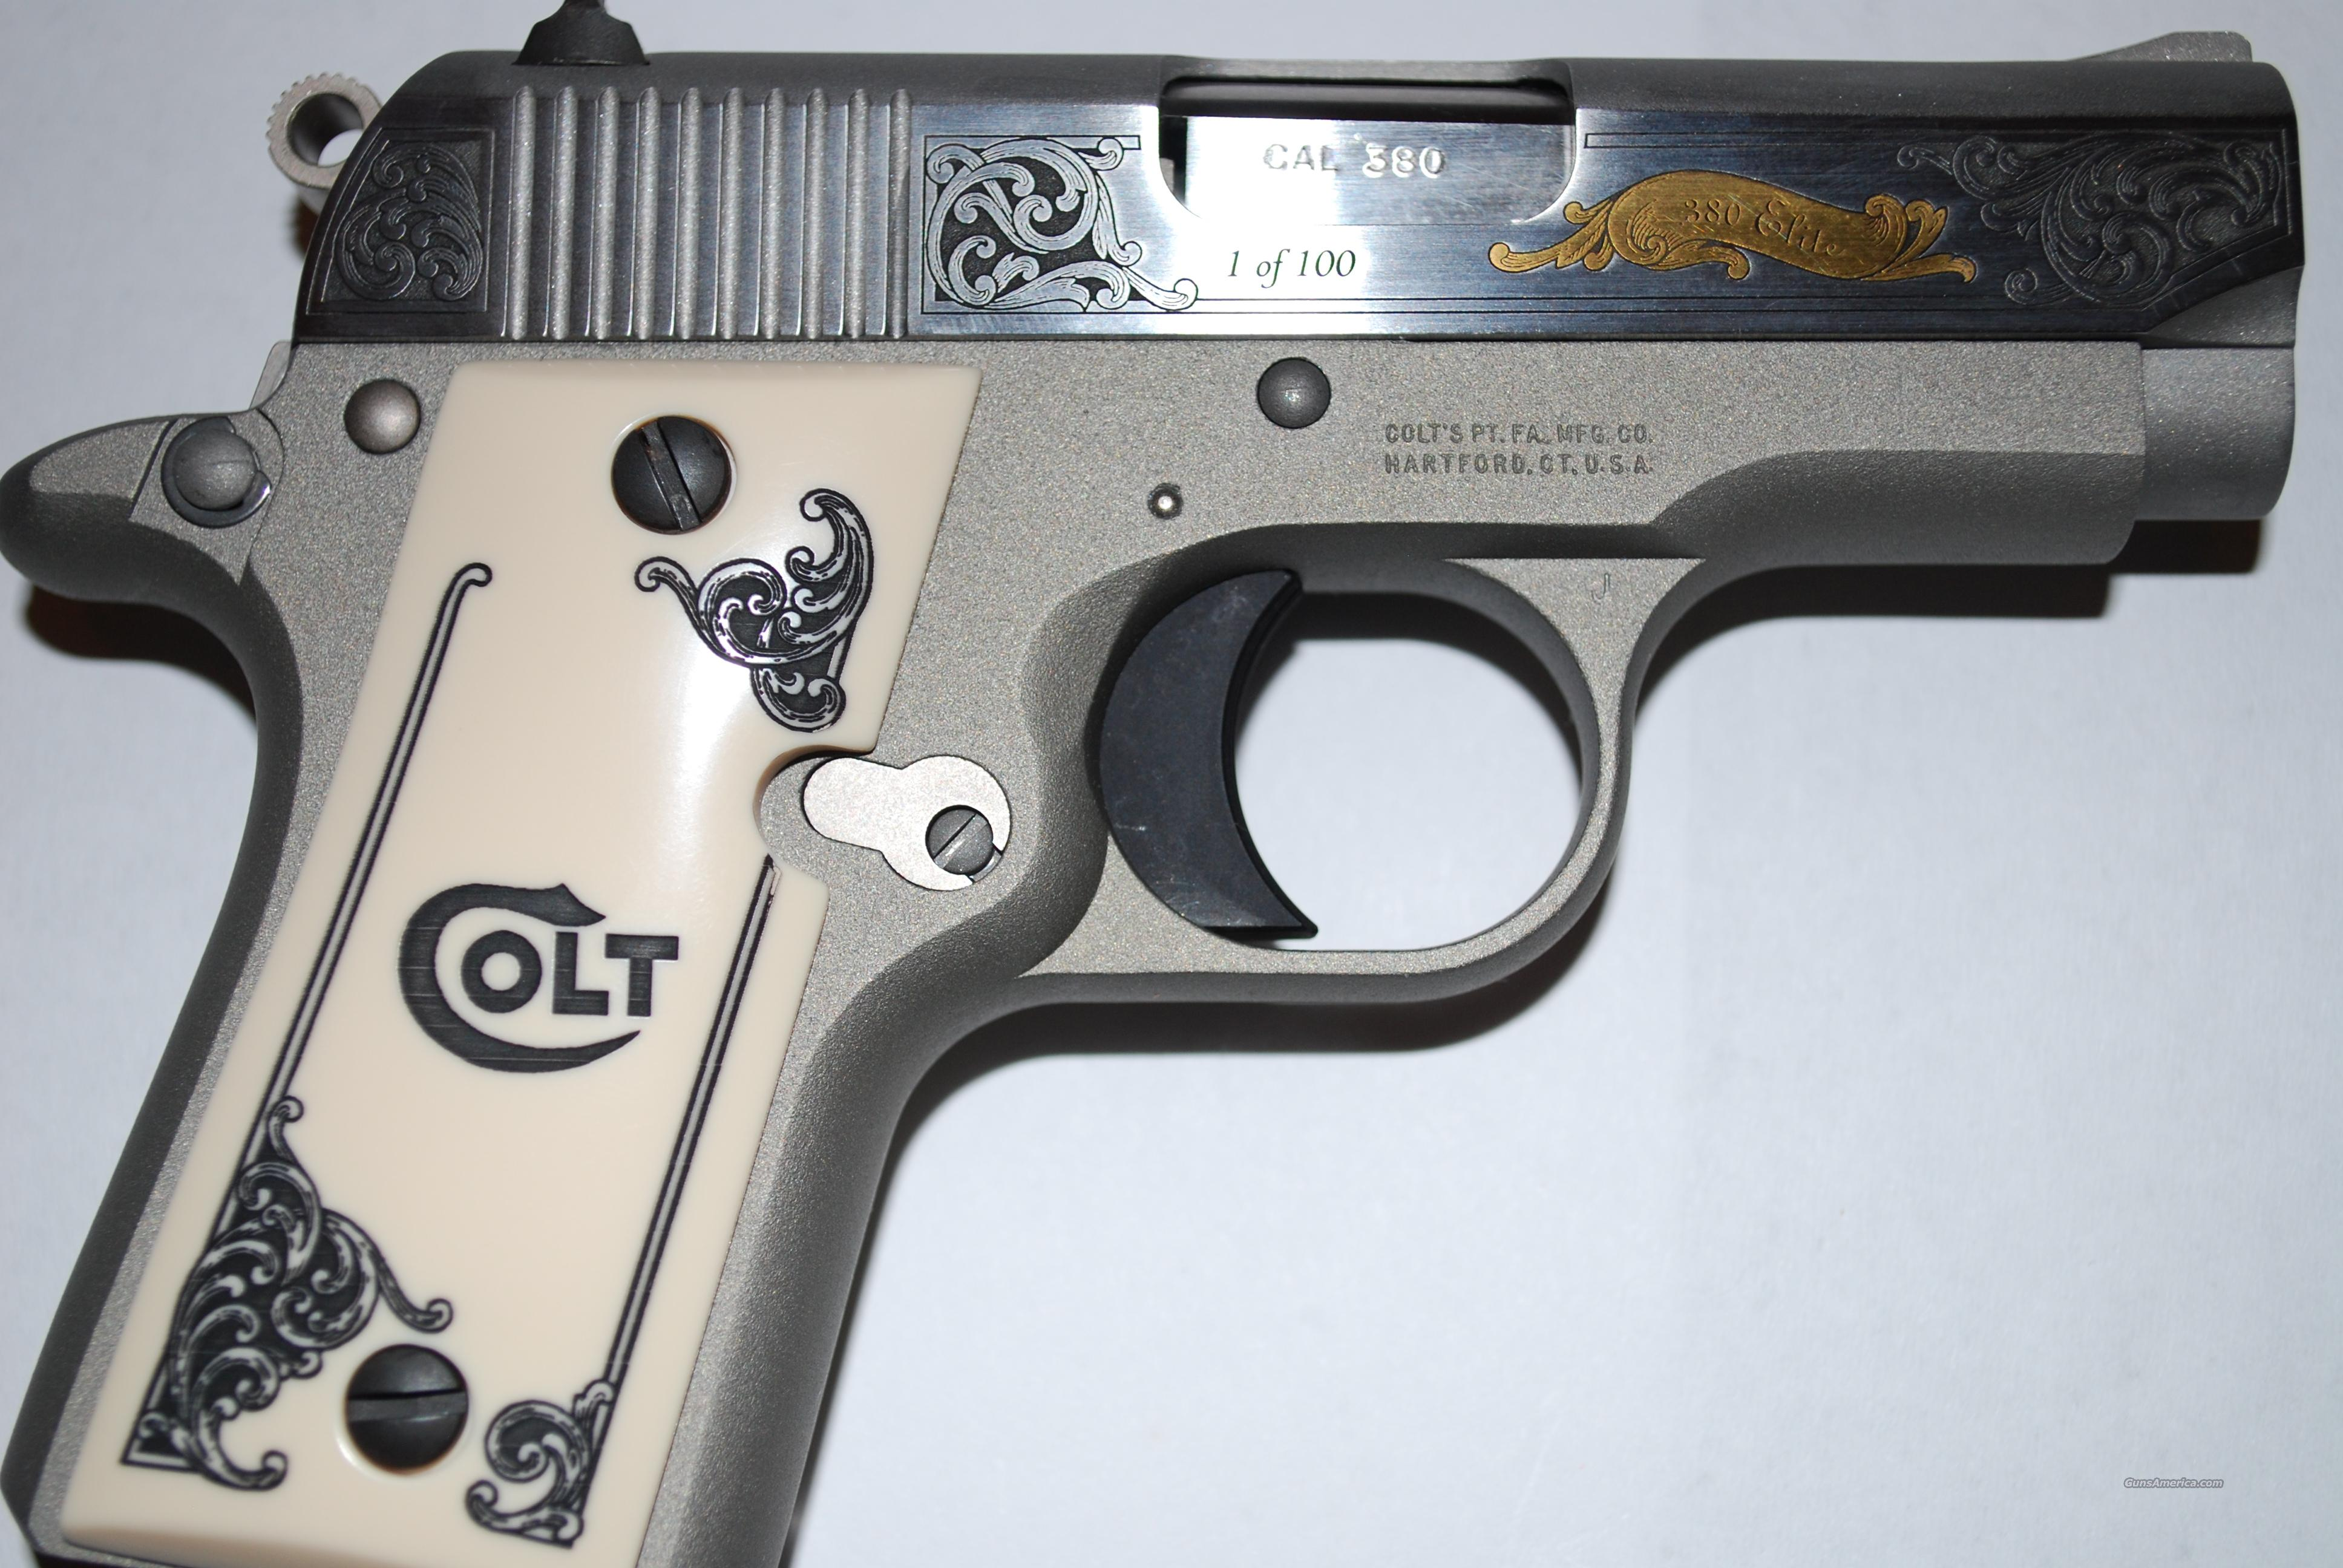 RARE 1 of 100 Engraved Colt Mustang ELITE 380 ACP ~ LIMITED EDITION ~ Mint (Unfired) Condition  Guns > Pistols > Colt Automatic Pistols (.25, .32, & .380 cal)